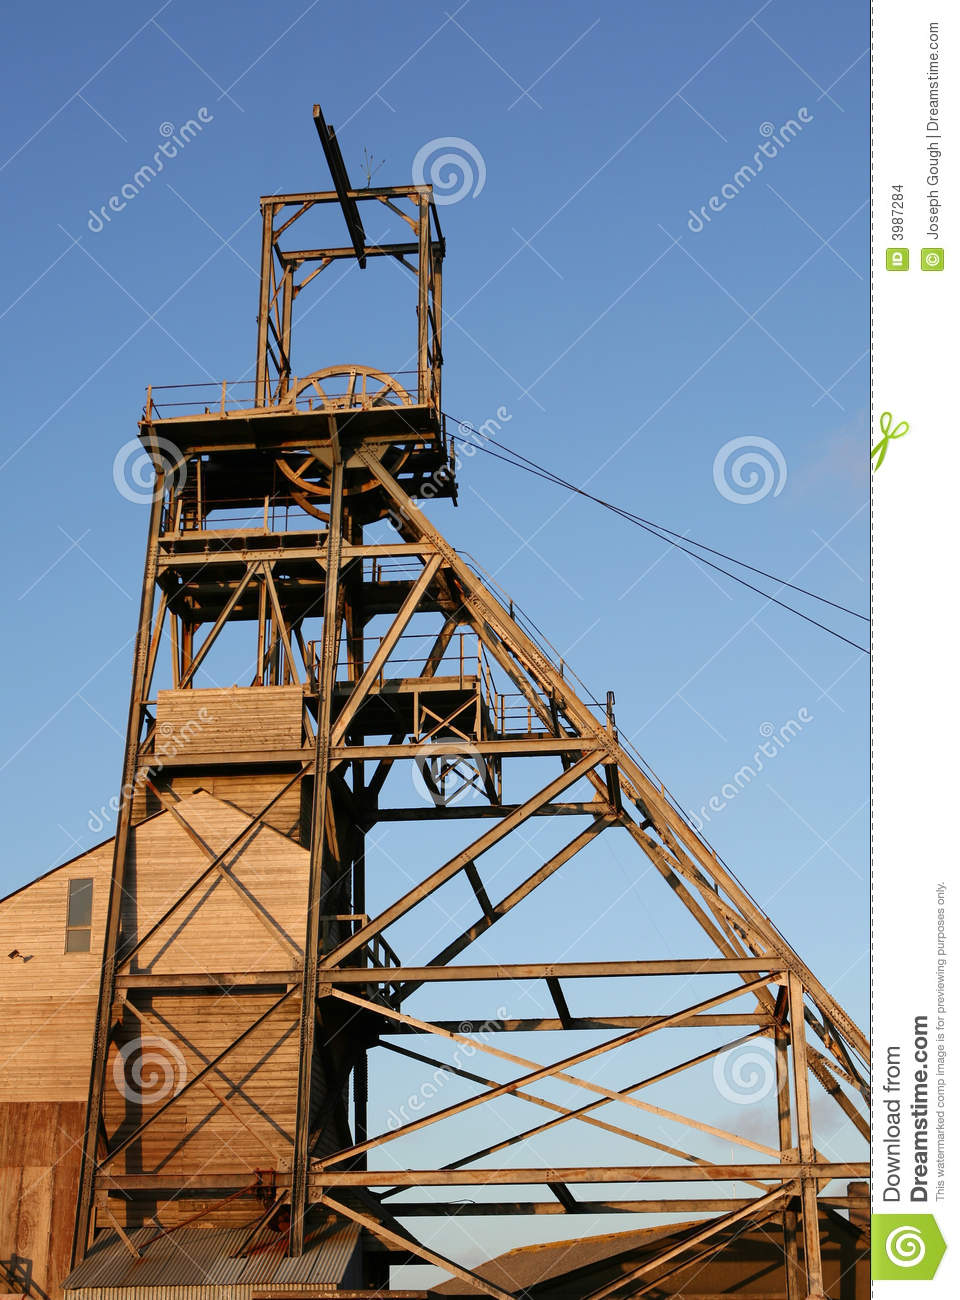 Mining Headframe Stock Photo Image Of Retro Wheel Frame